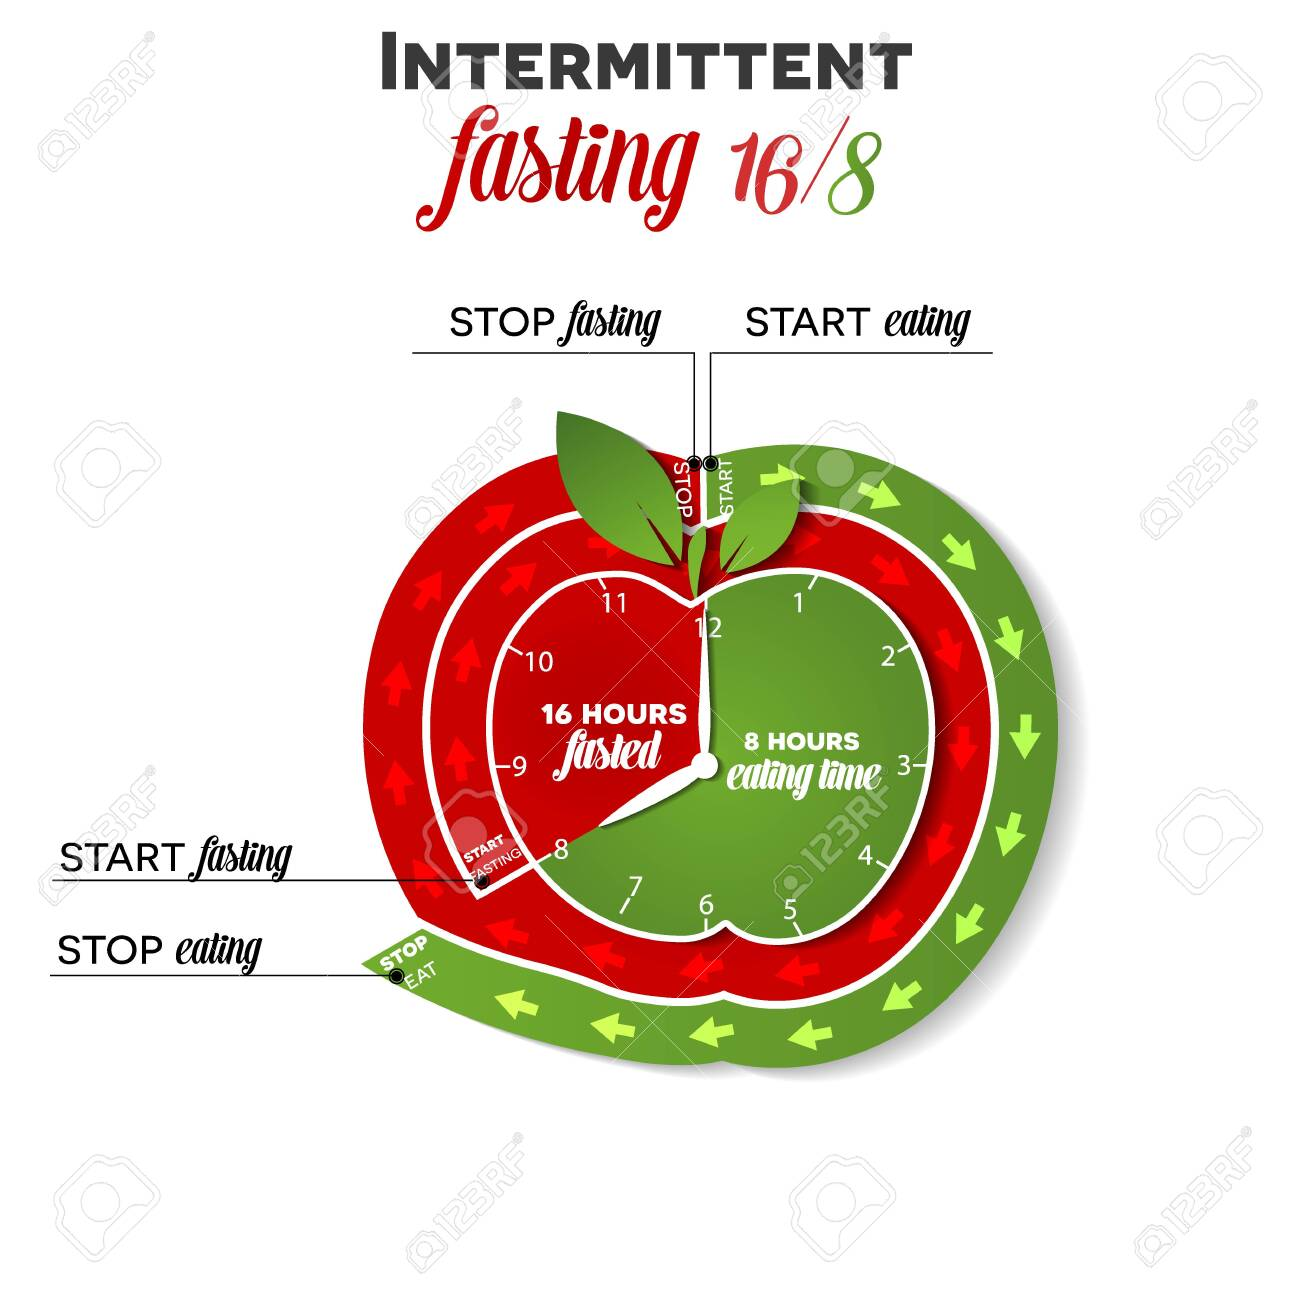 Intermittent Fasting Apple Shape Clock 16 8 For Weight Loss And Royalty Free Cliparts Vectors And Stock Illustration Image 139943812